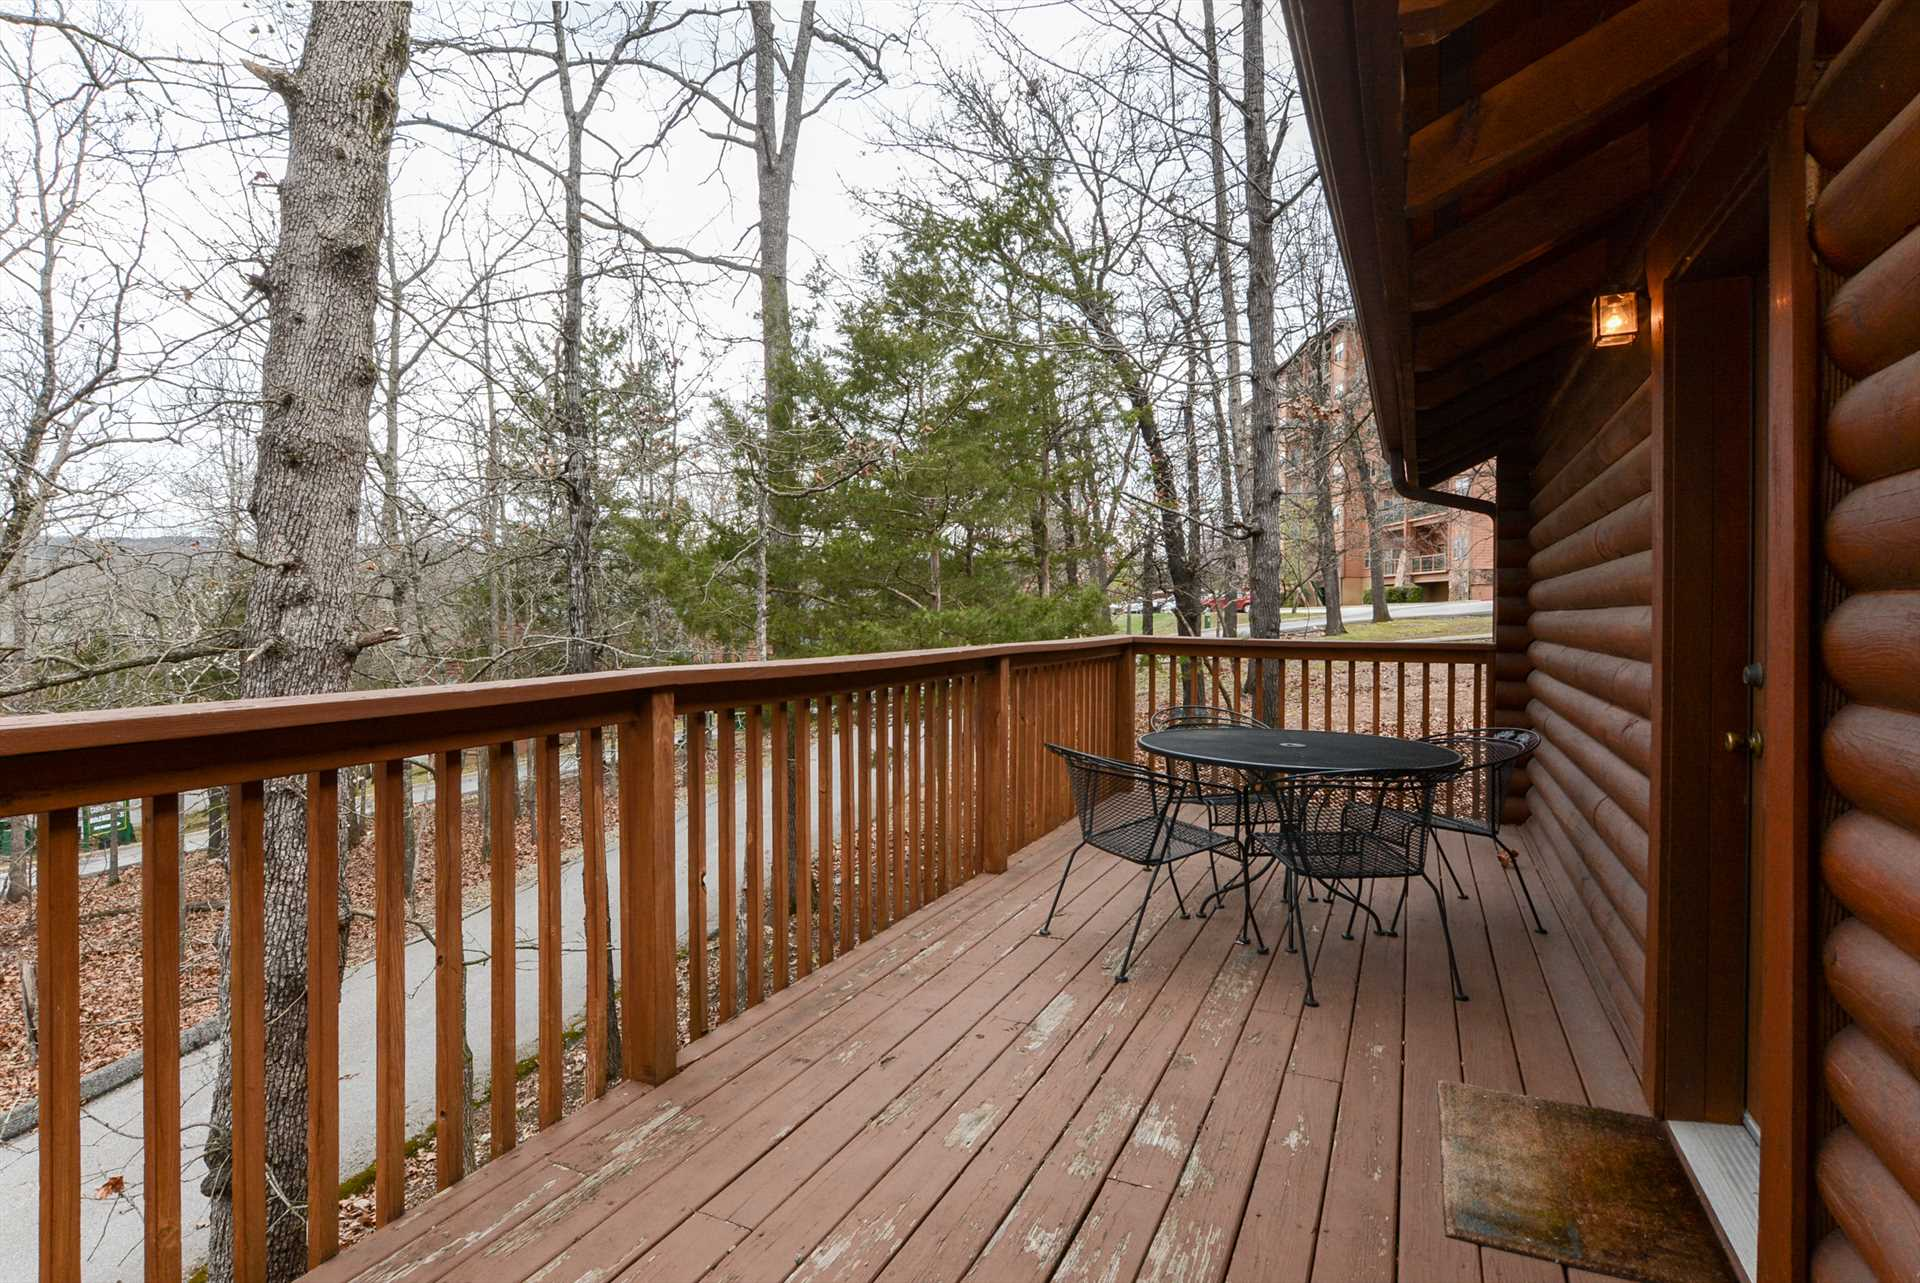 The back deck is a great place to relax after a busy day in